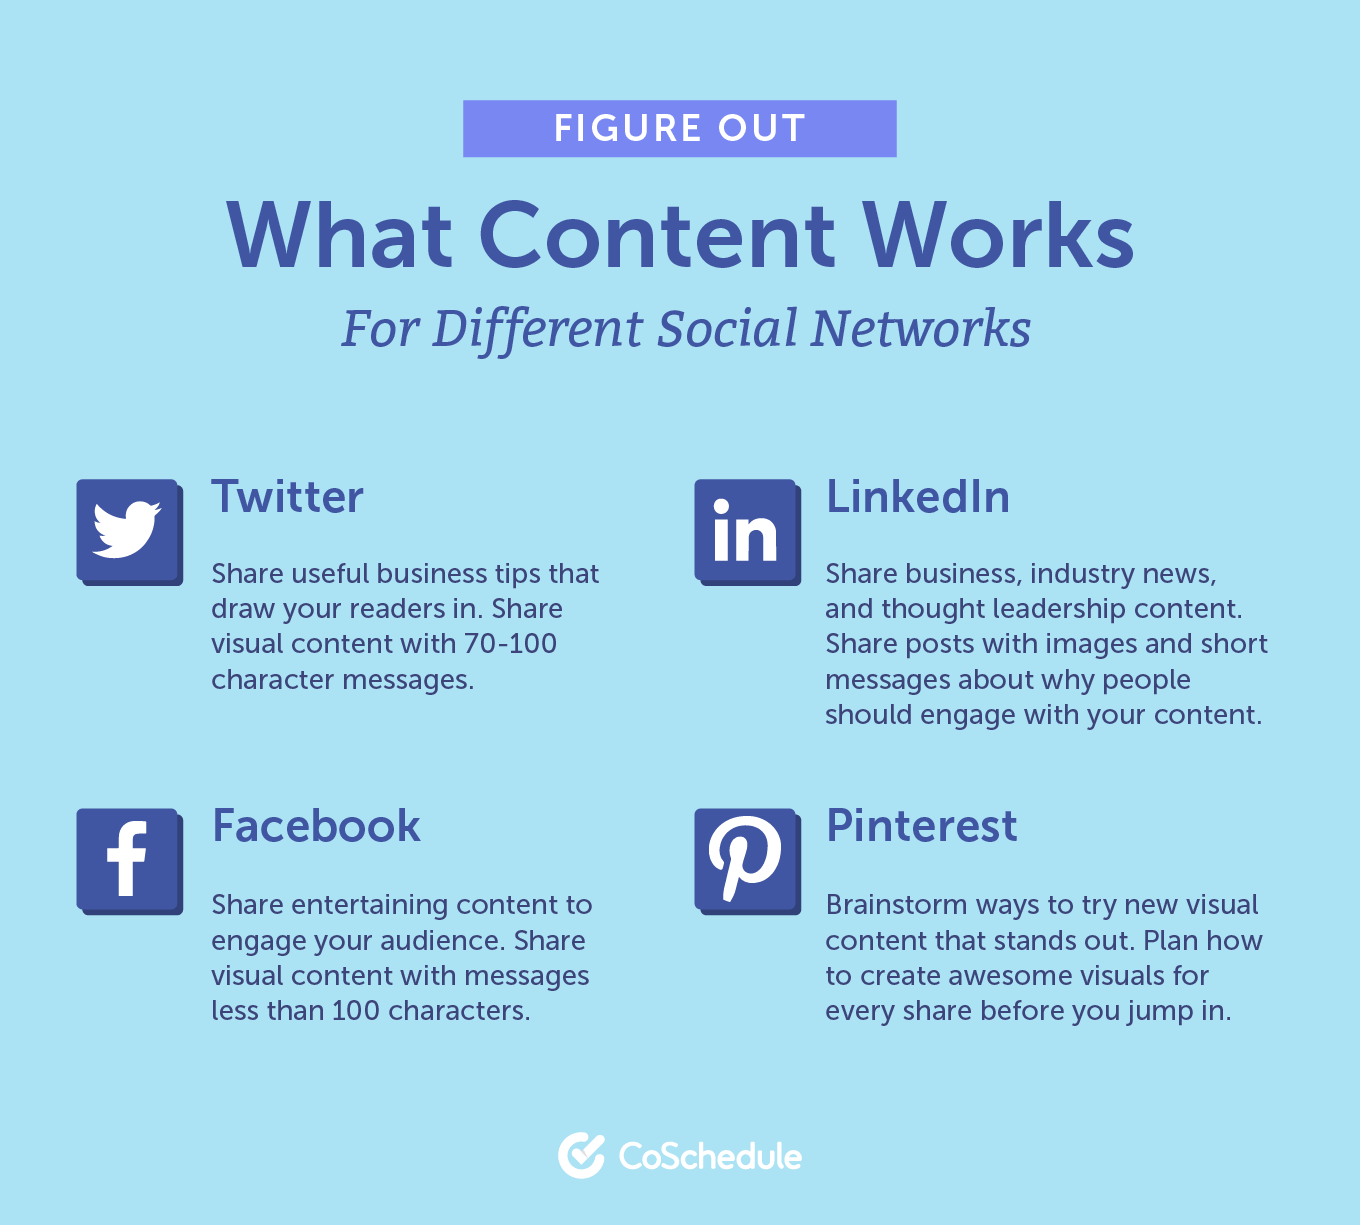 Figure Out What Content Works for Different Social Networks